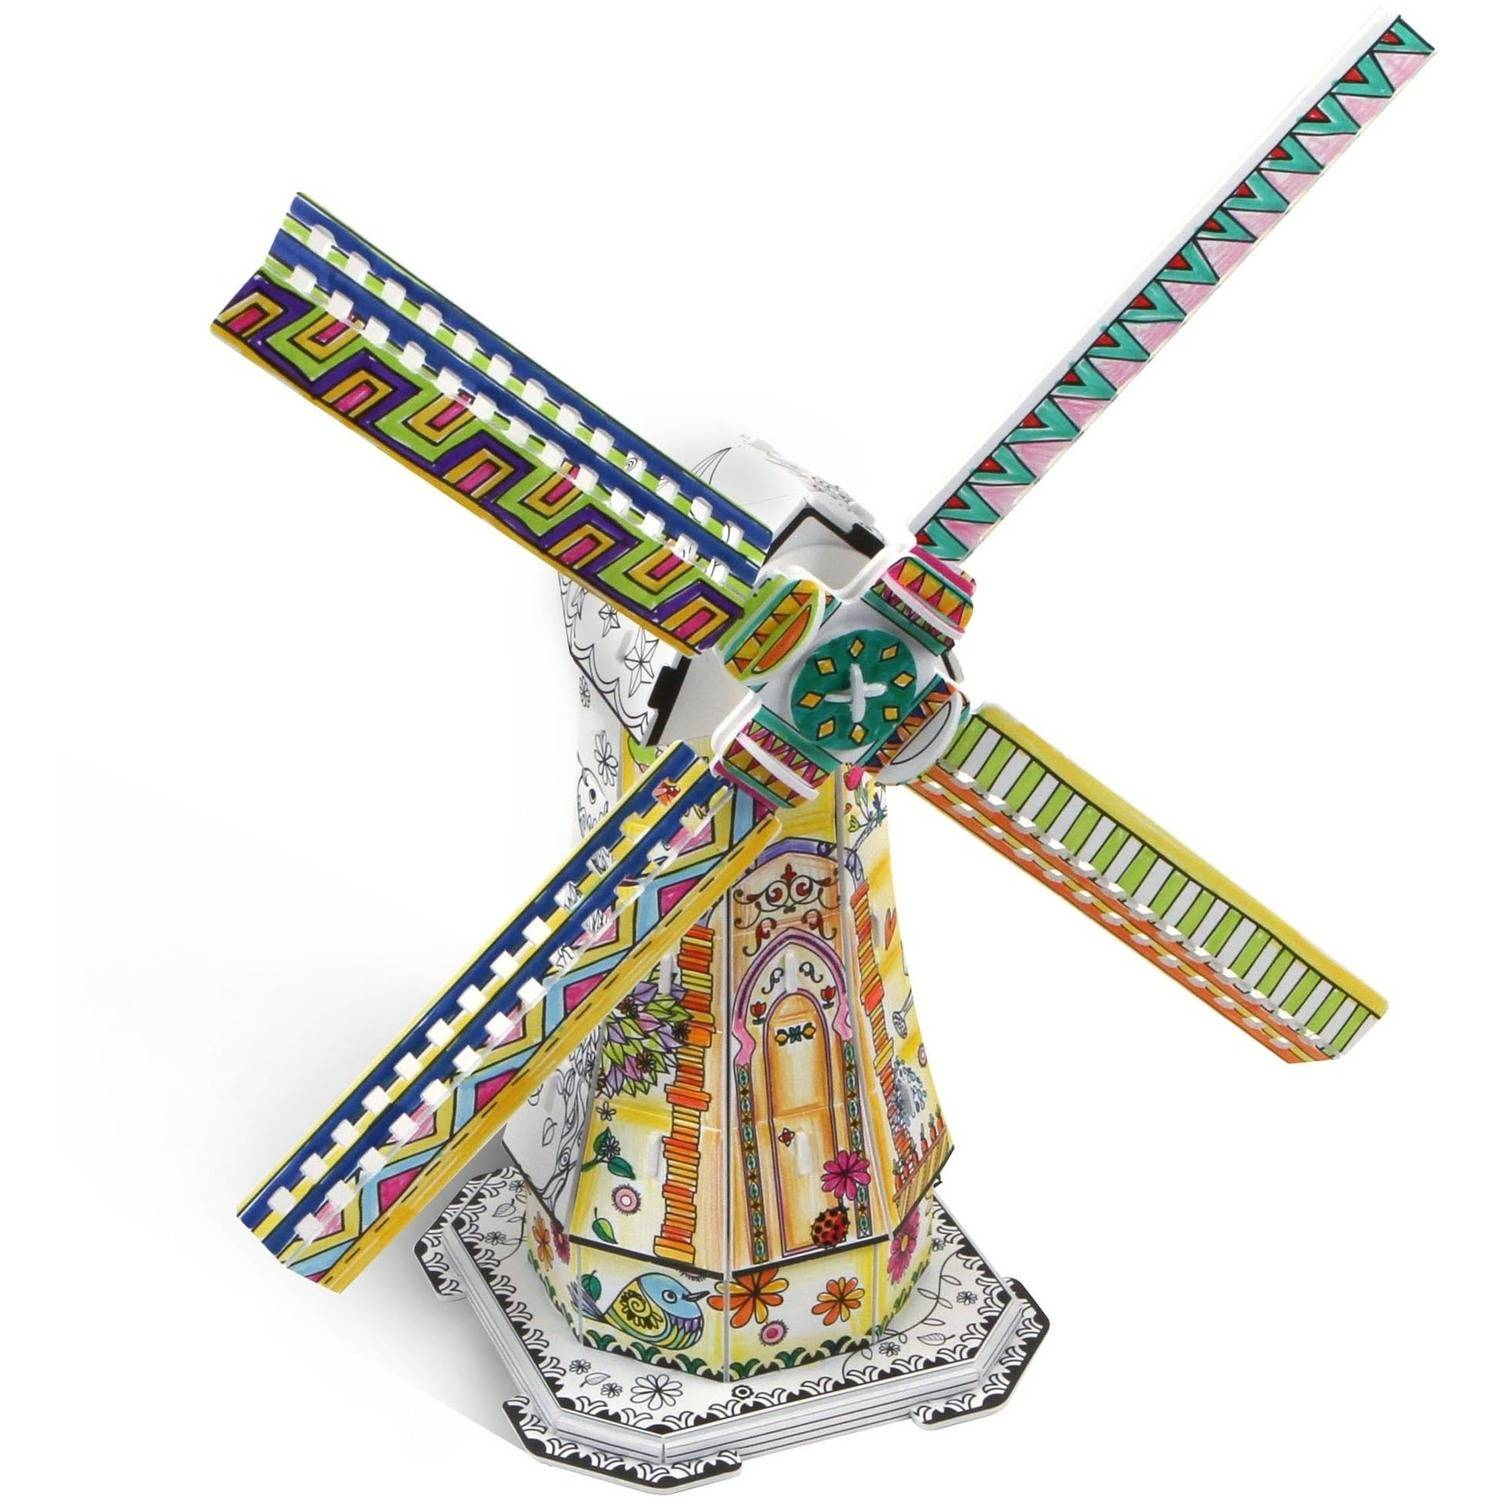 Image of Netherlands Windmill Coloring 3D Puzzle, 42-Pieces